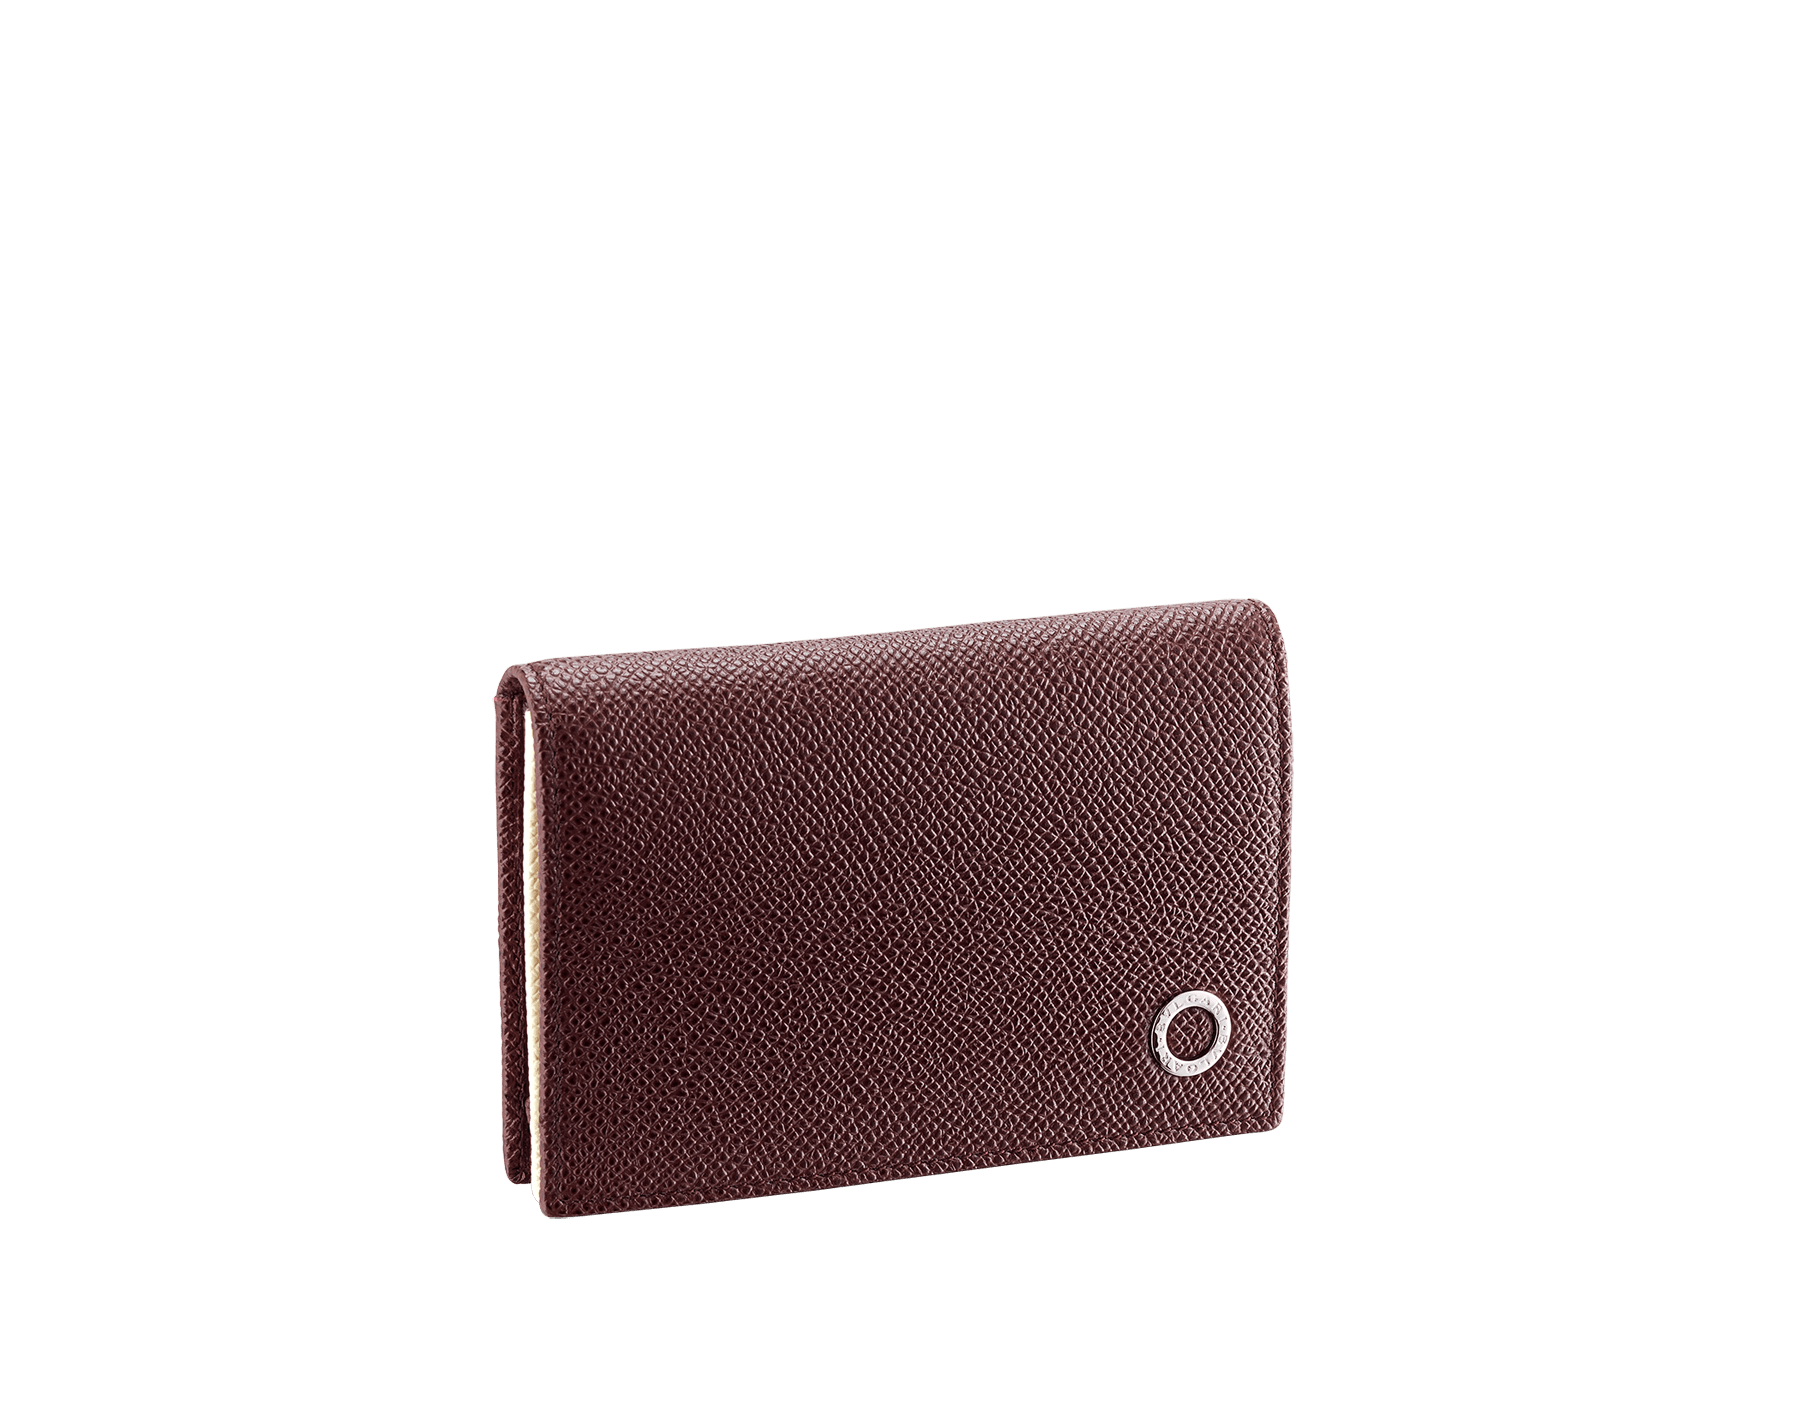 """""""BVLGARI BVLGARI"""" men's business card holder in Oxblood bordeaux and Ivory Opal white grain calf leather. Palladium-plated brass embellishment with logo. 291149 image 1"""